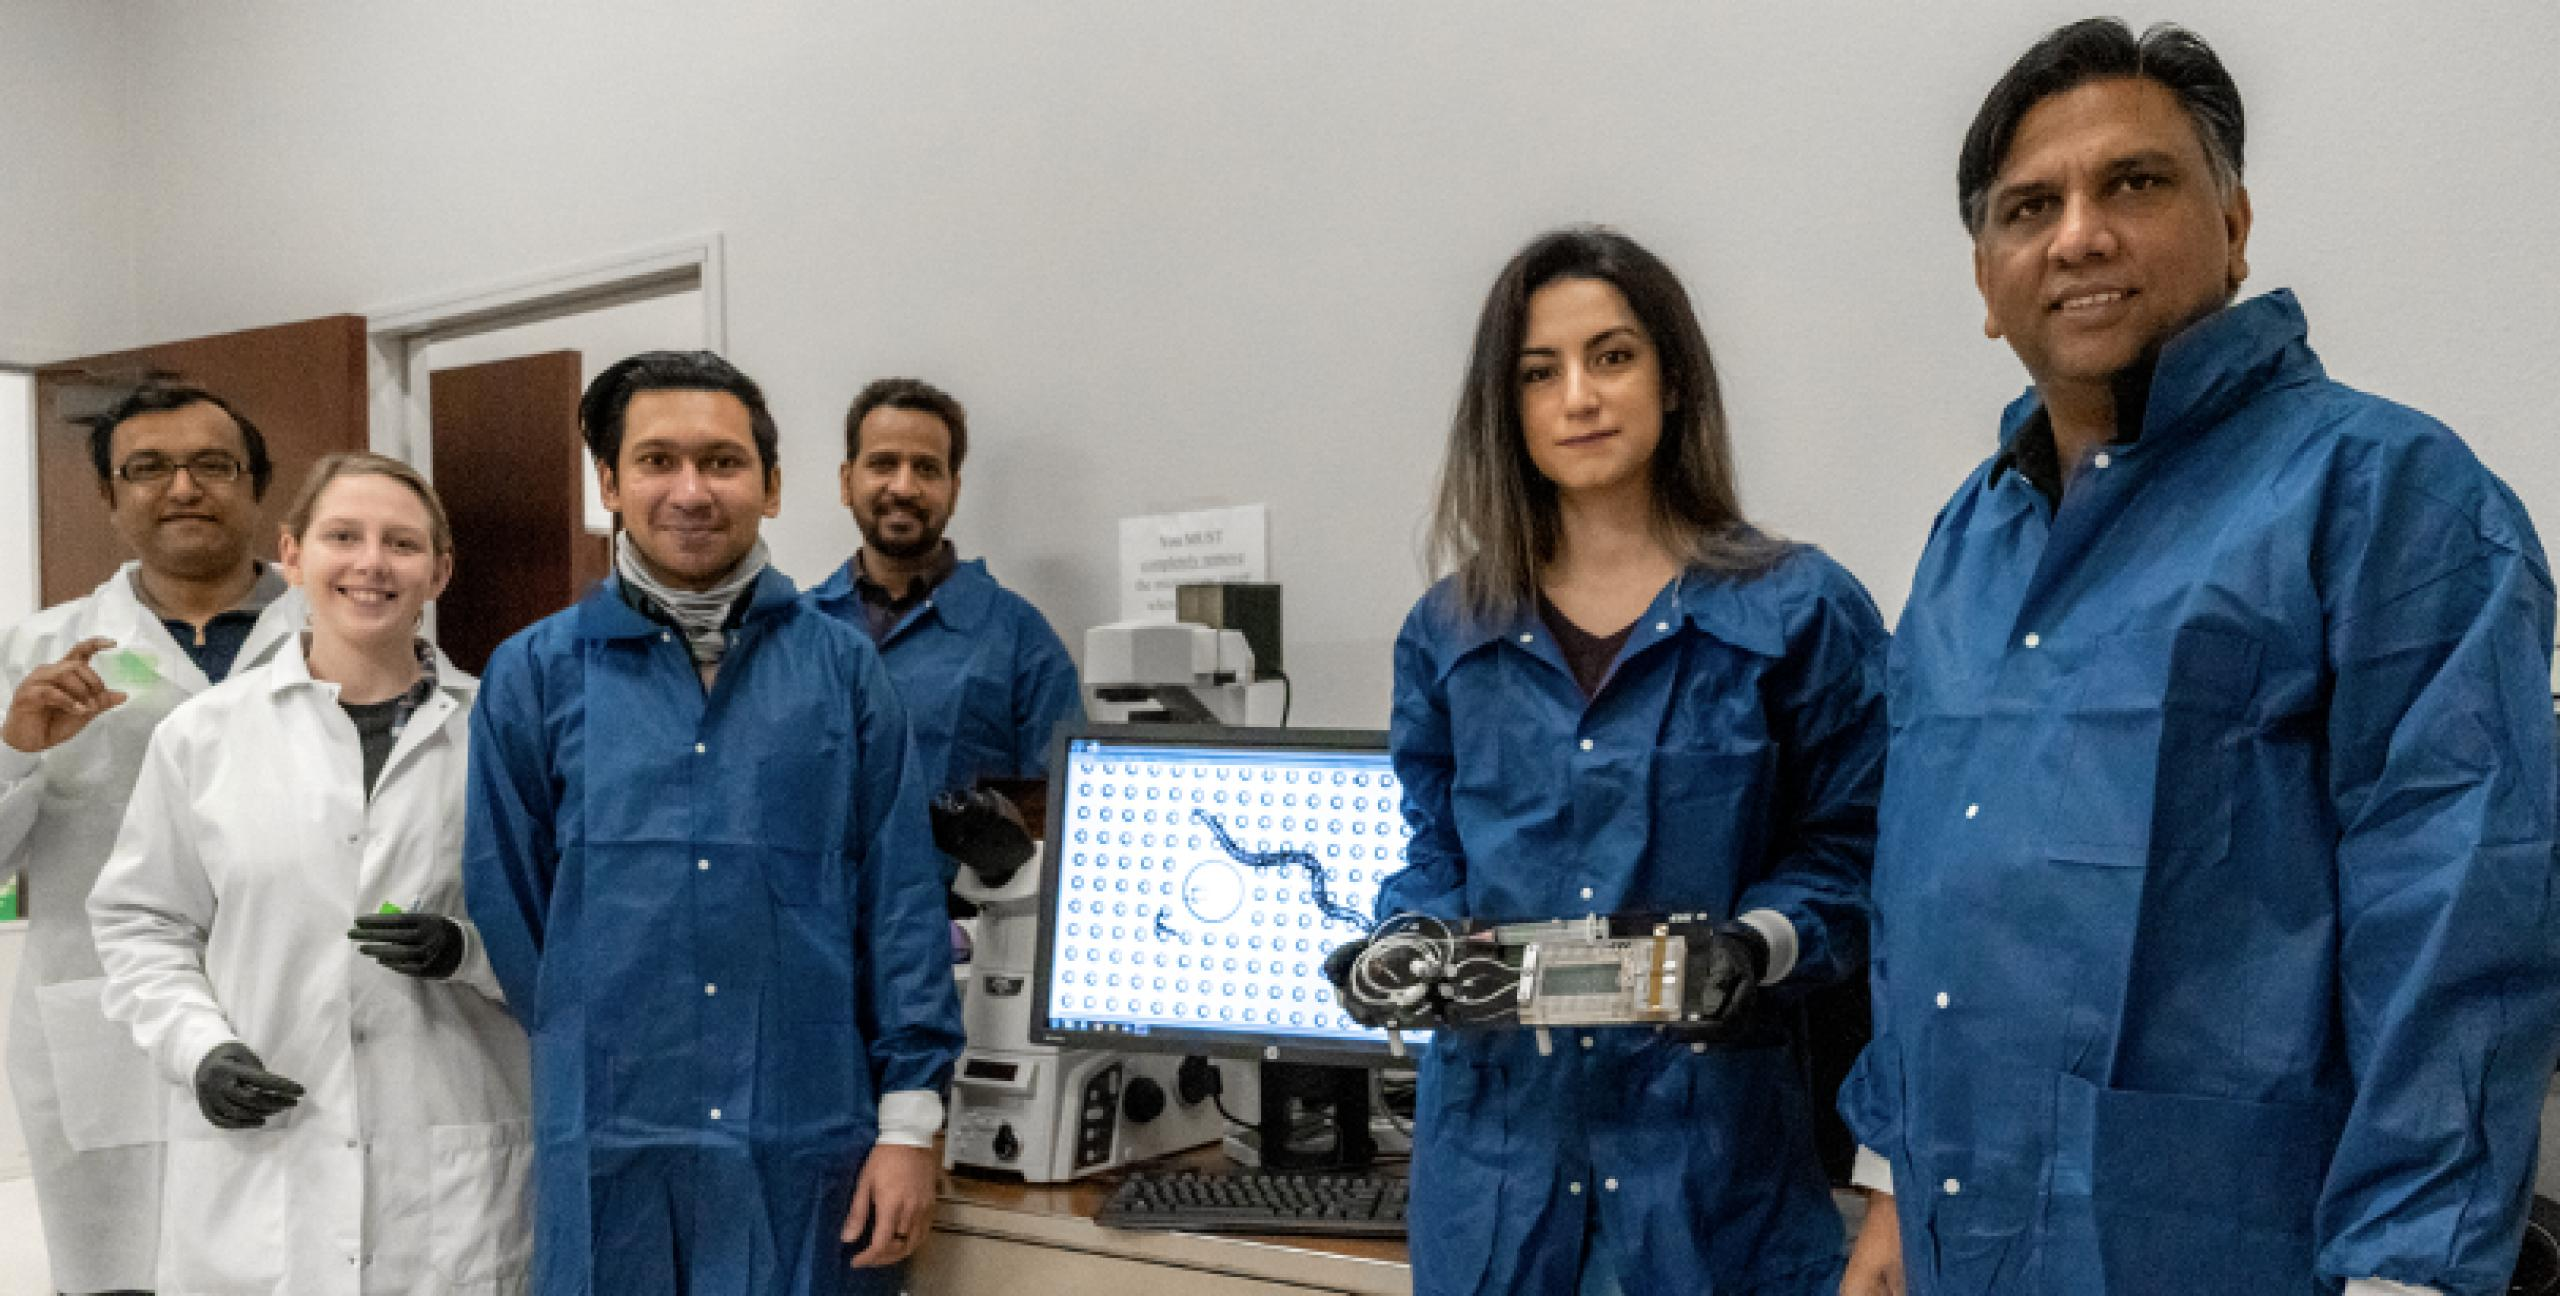 Photo of 6 research scientists wearing lab gear and holding science experiments and equipment.